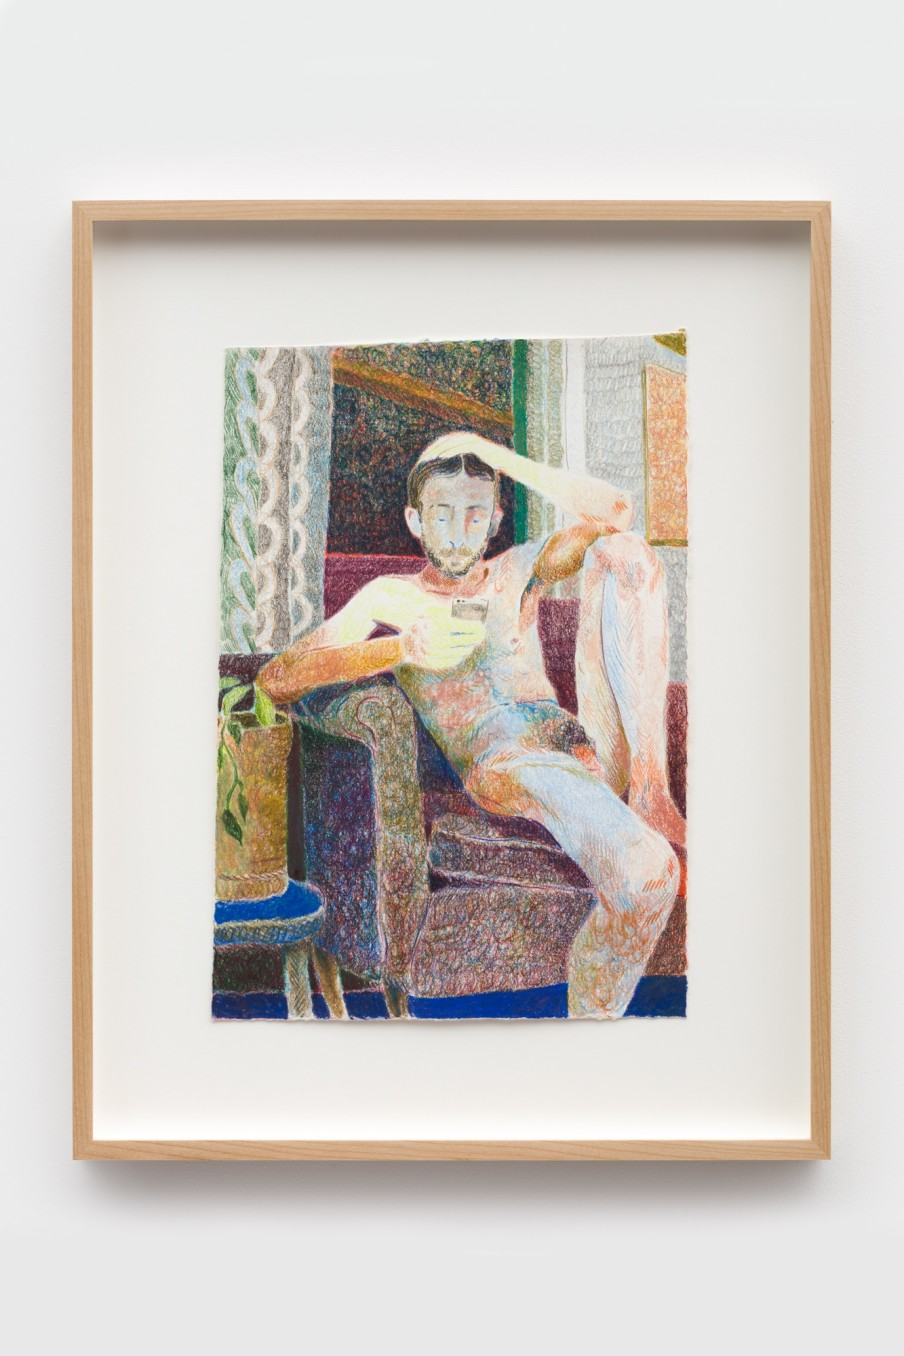 Anthony Cudahy Ian reading the news, 2021 Colored pencil on paper Image: 35.6 x 25.4 cm 14 x 10 in...